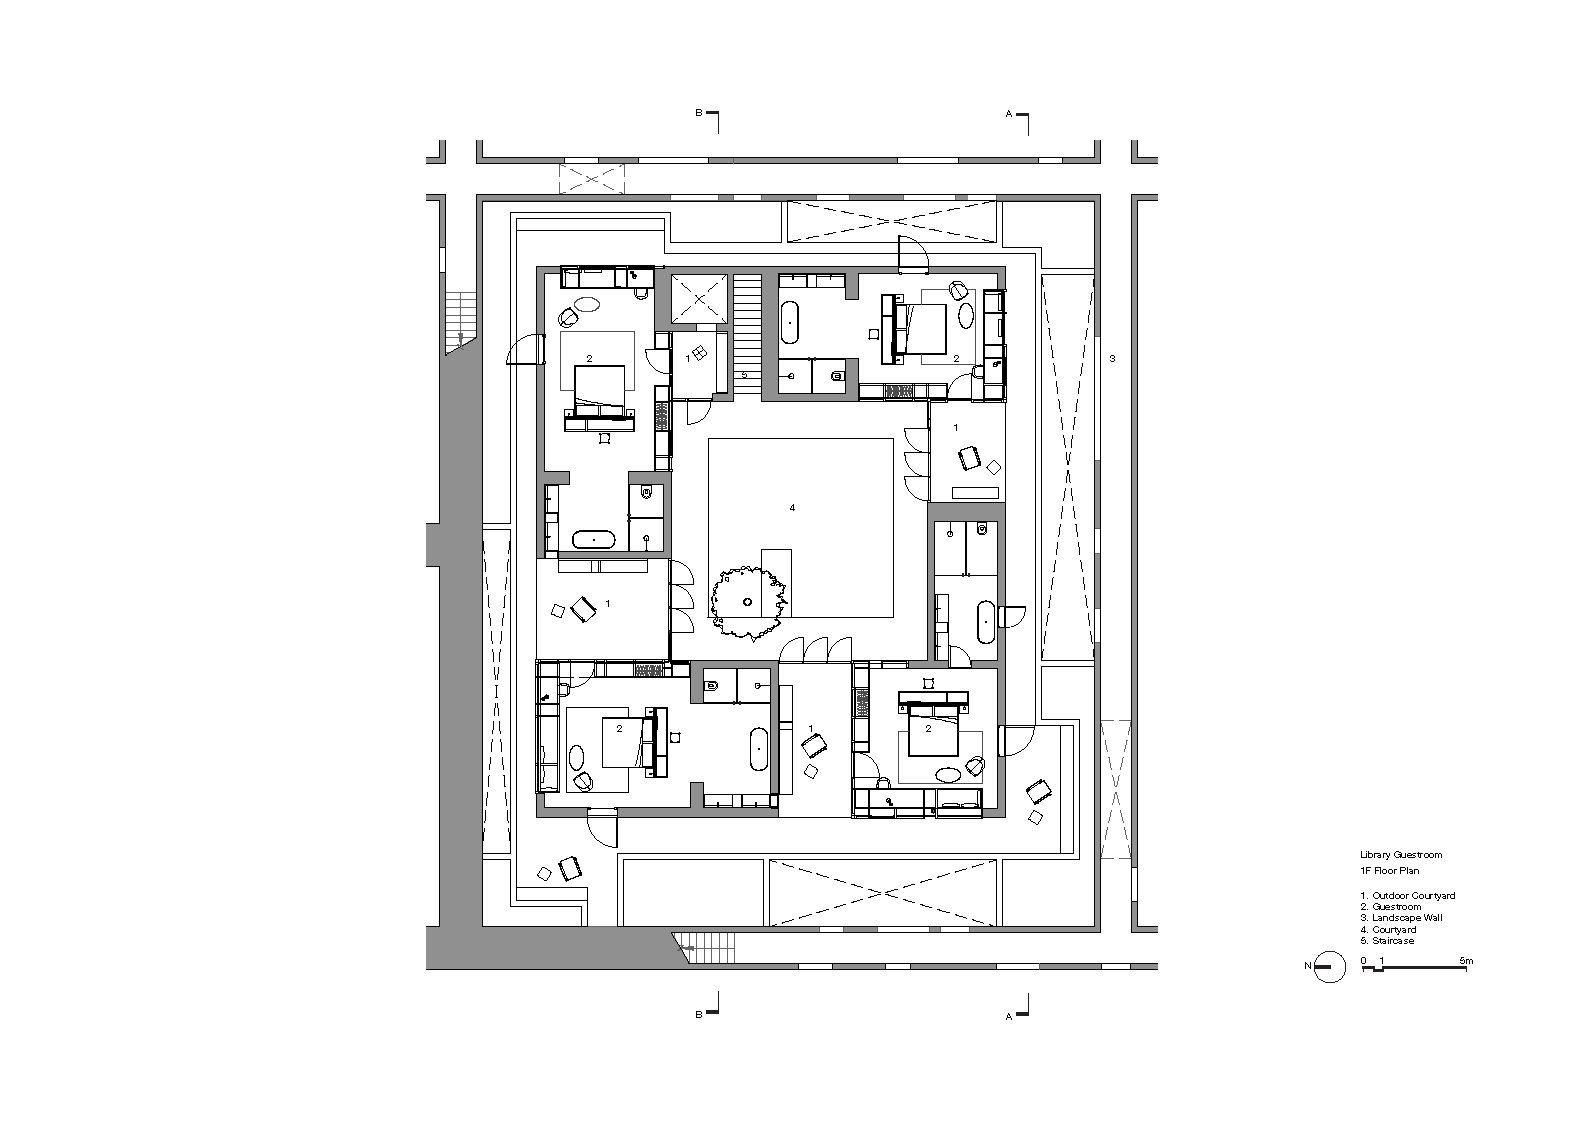 Library Guestroom Floor Plan 1F Neri&Hu Design and Research Office}